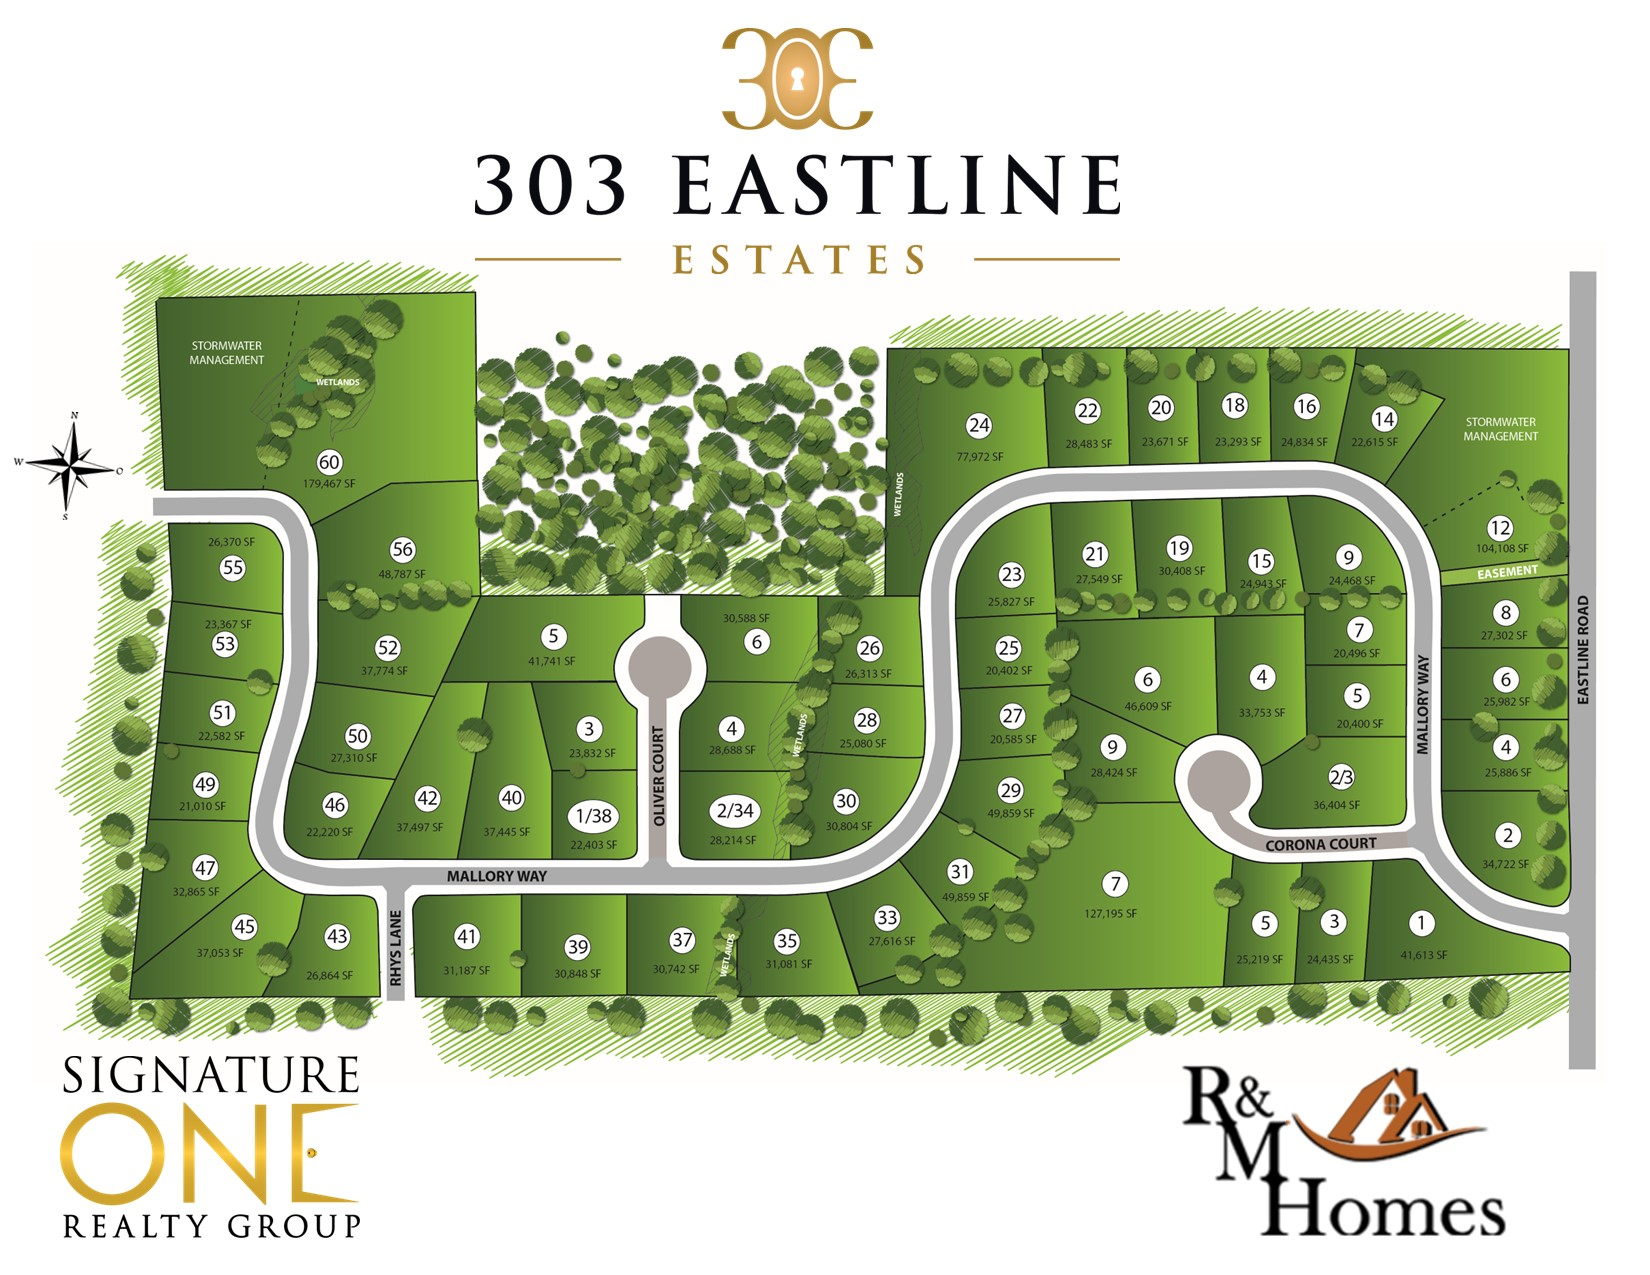 303 Eastline Estates Site Map